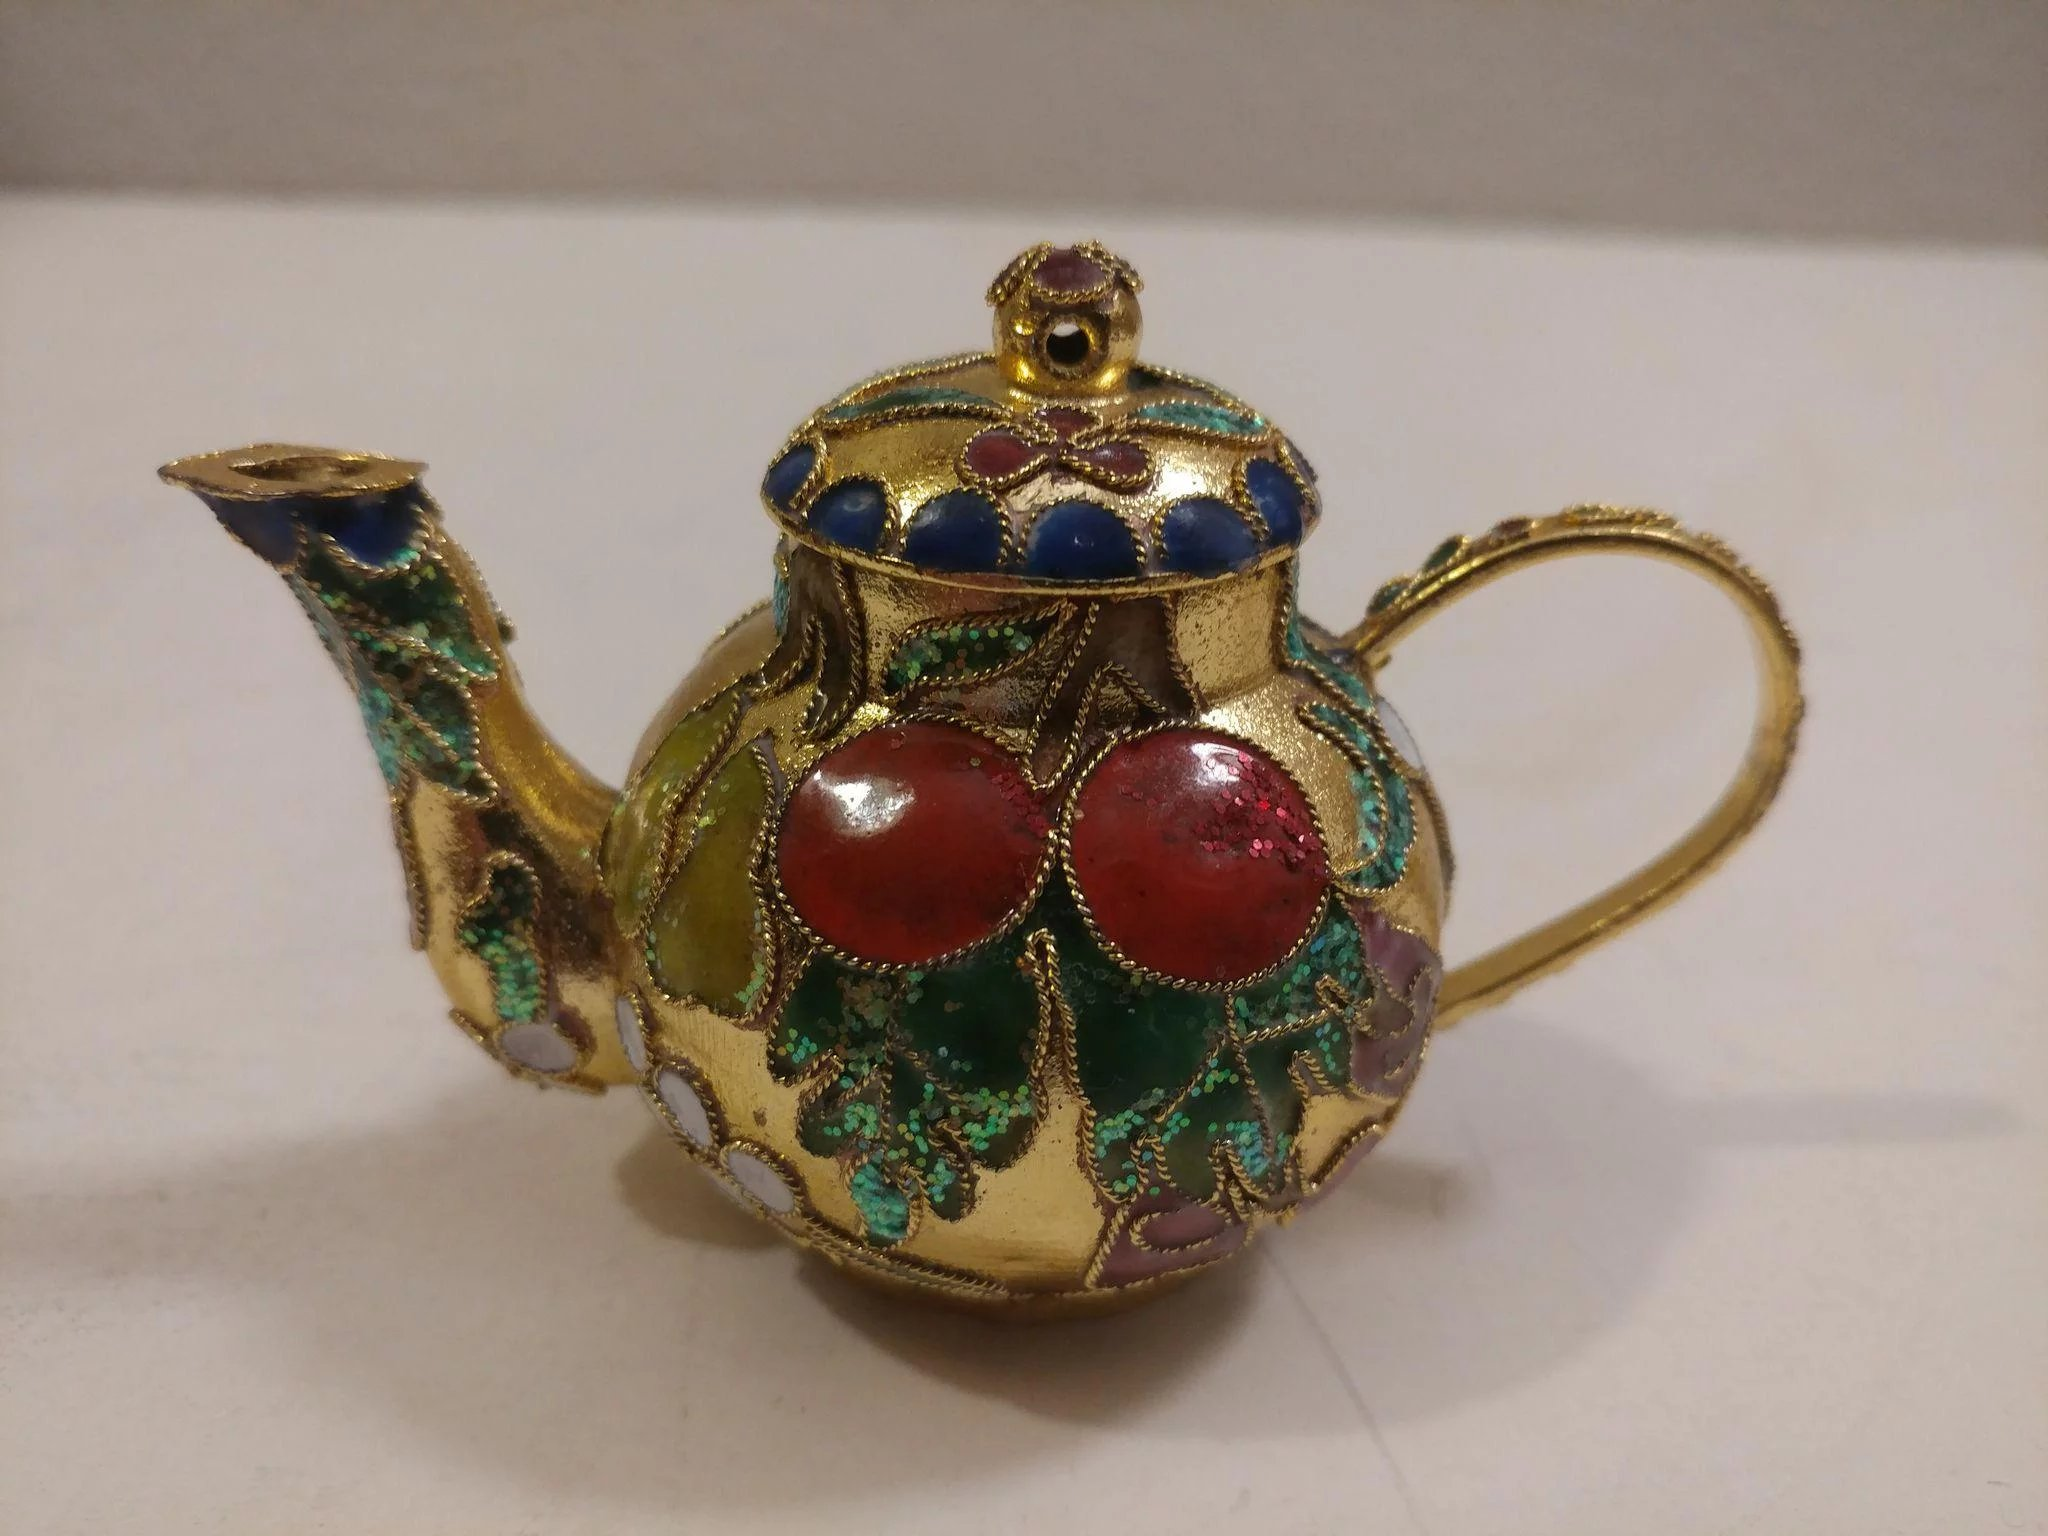 Metal and Enamel Teapot Christmas Ornament : Second Time Around ...